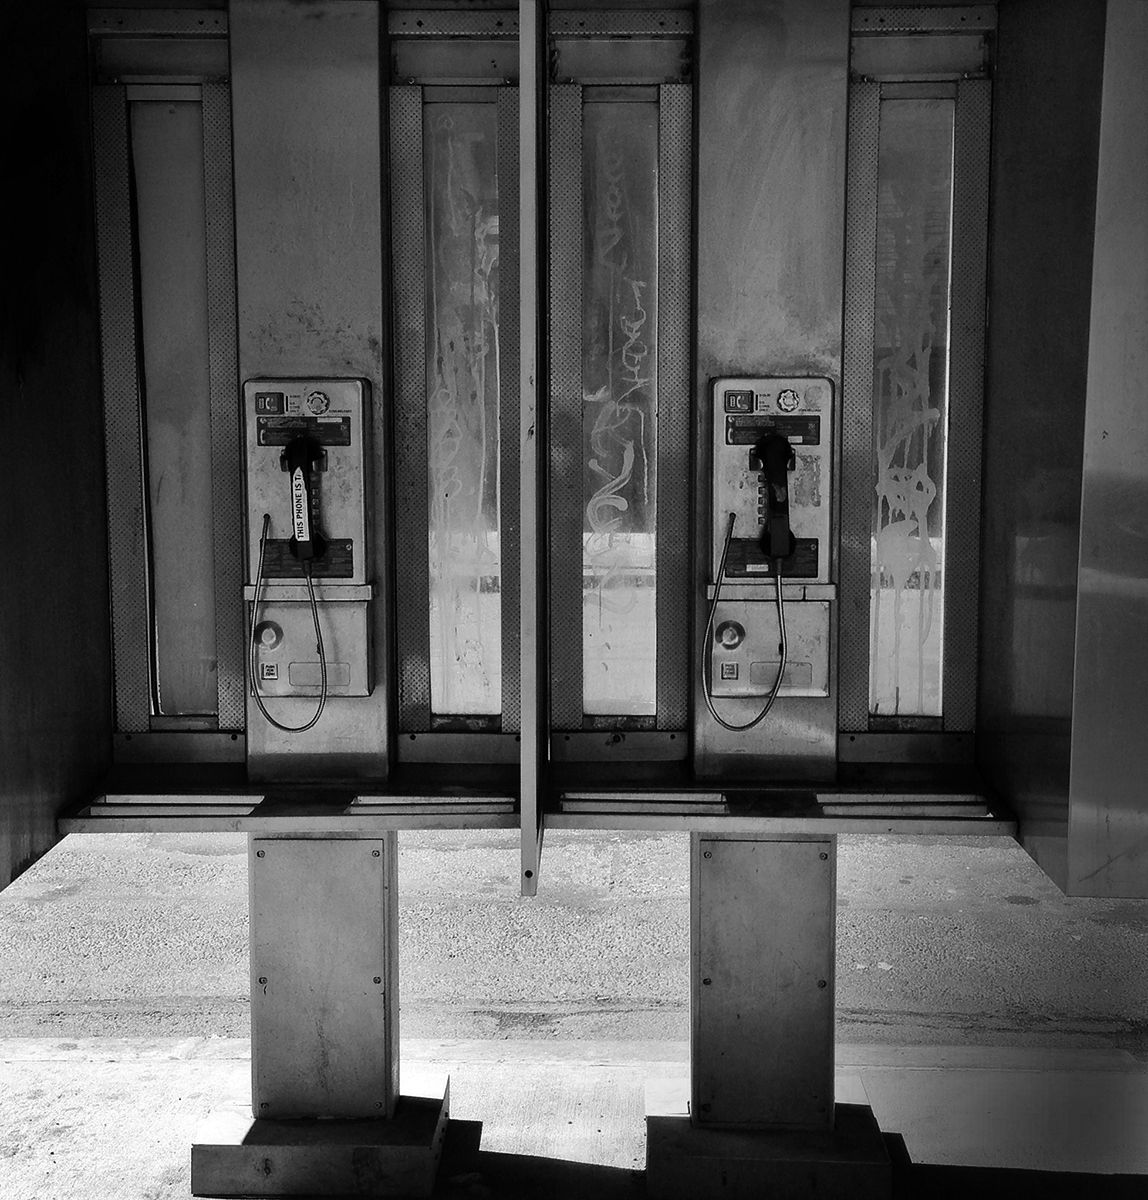 Phone Booth, NYC